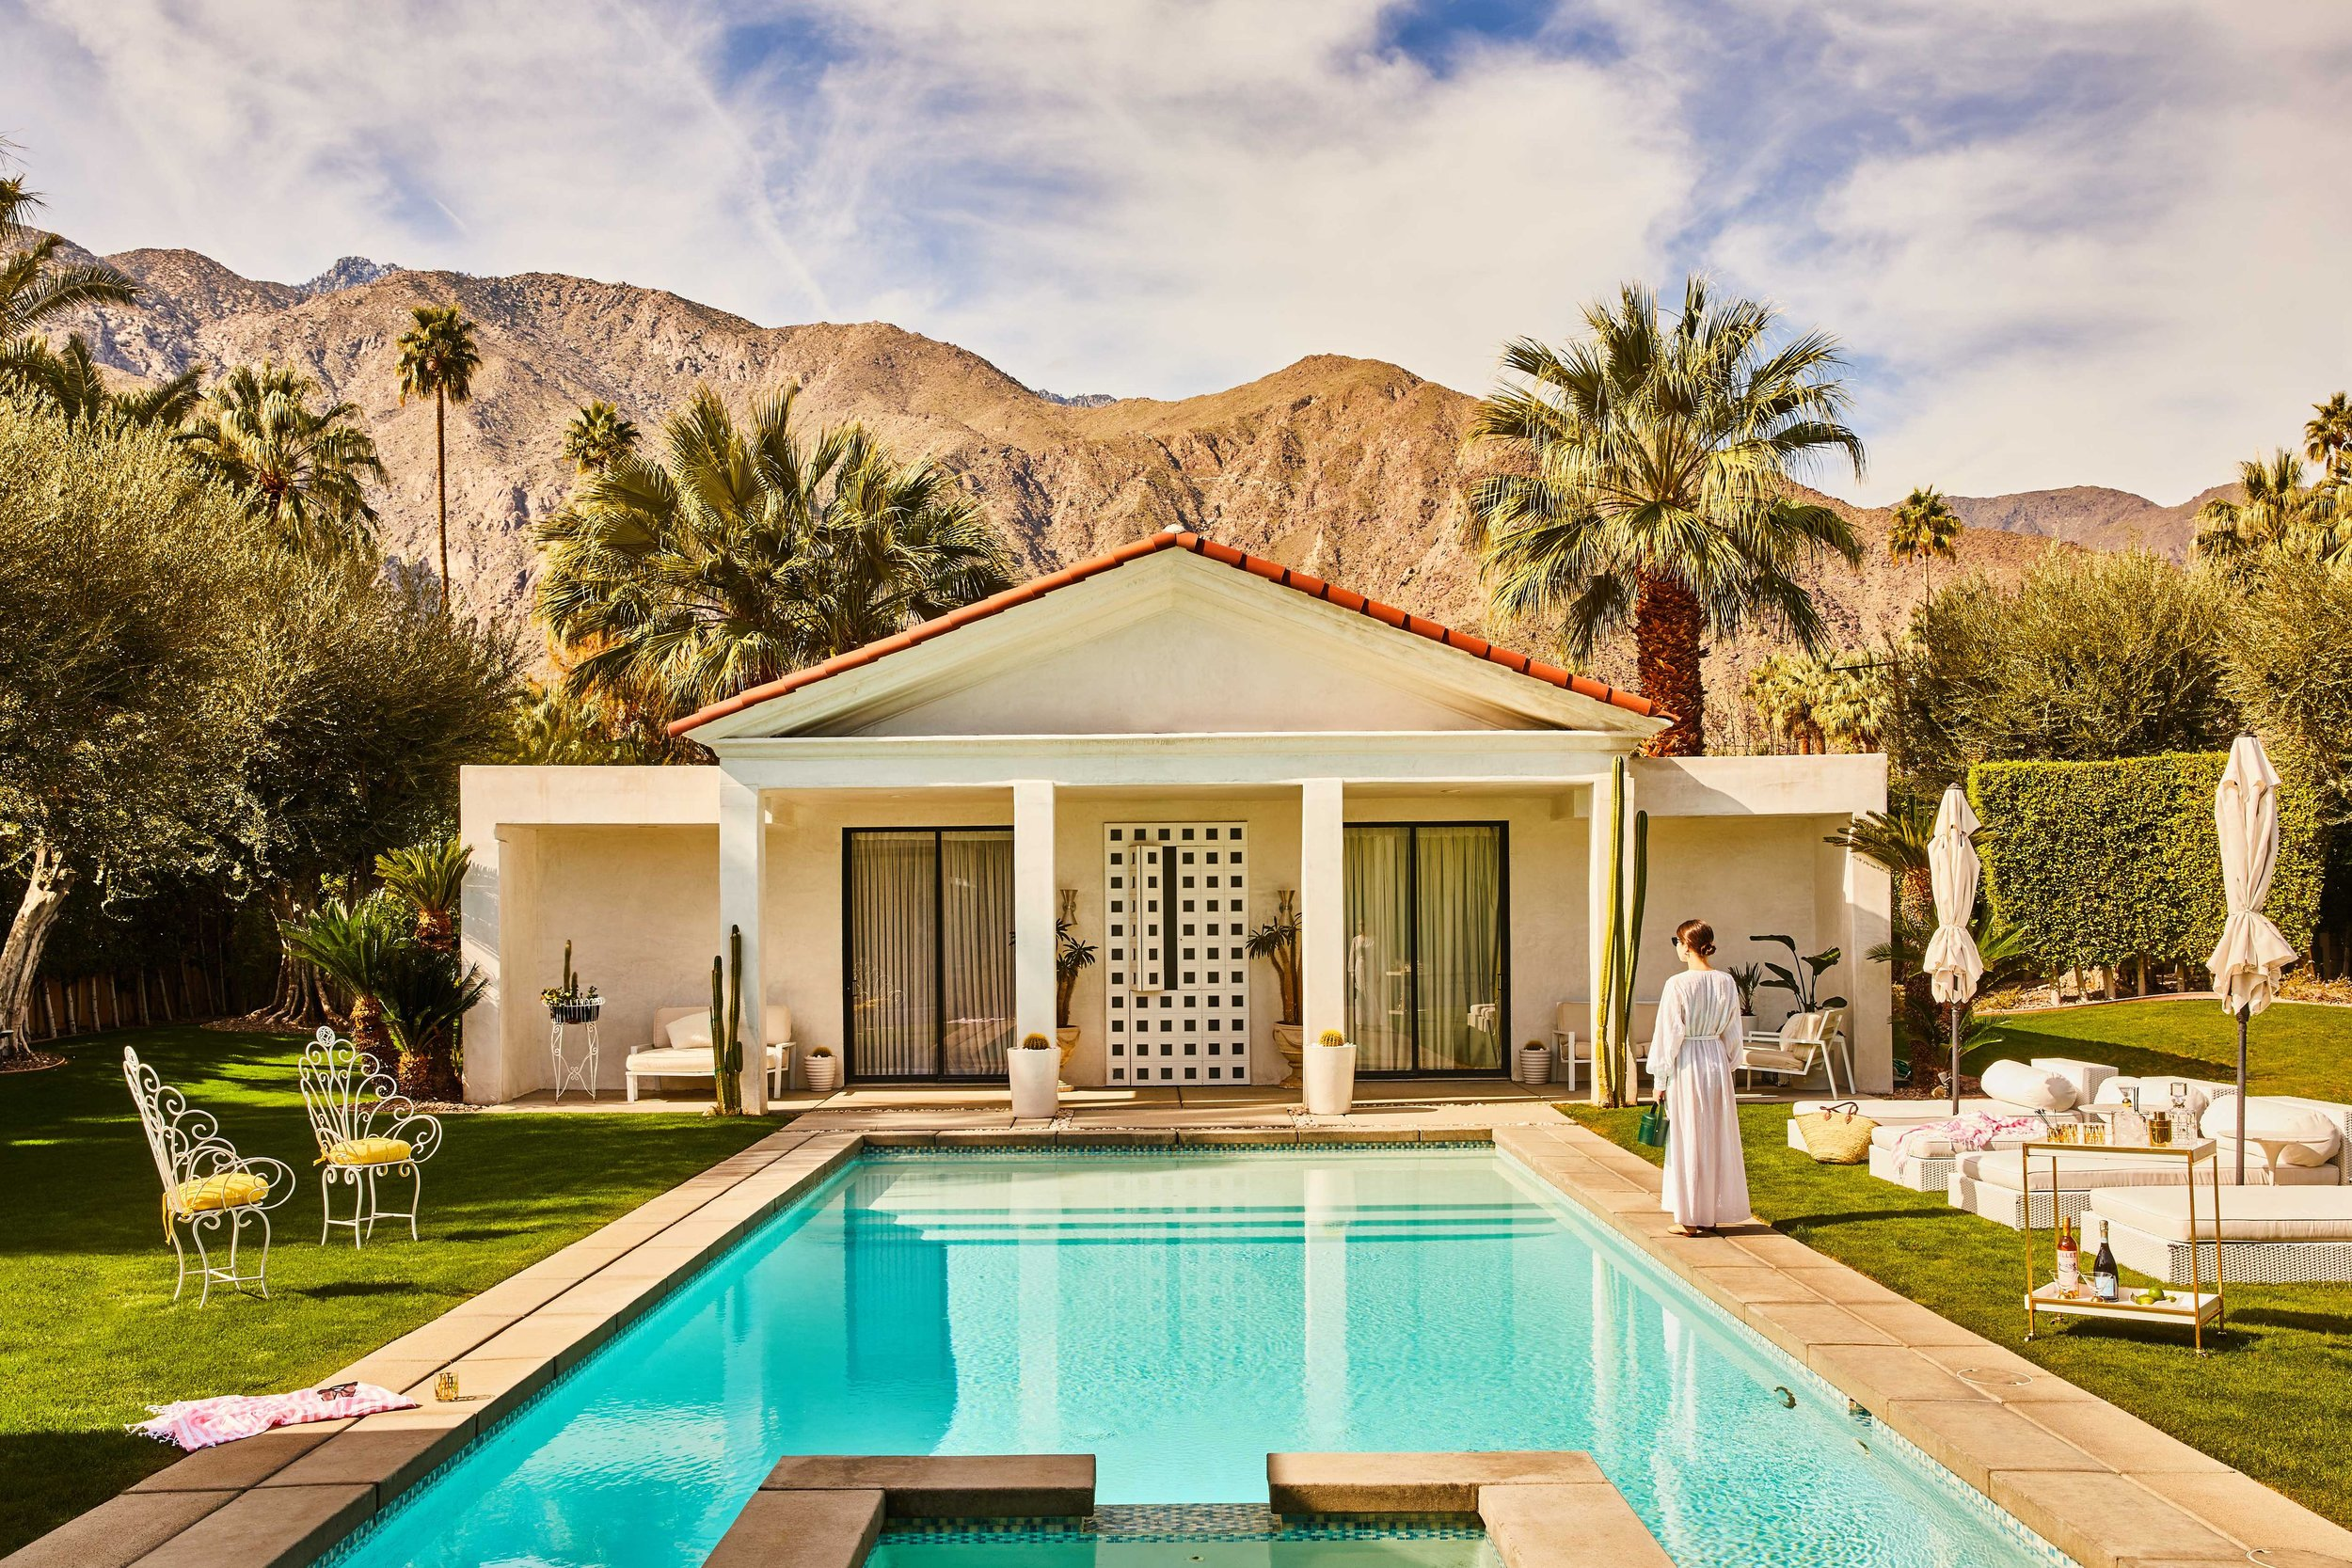 How to Bring Old Hollywood Into Your Home - Take a cue from the desert haven where Marilyn Monroe, Frank Sinatra and Elvis Presley went to unwind.